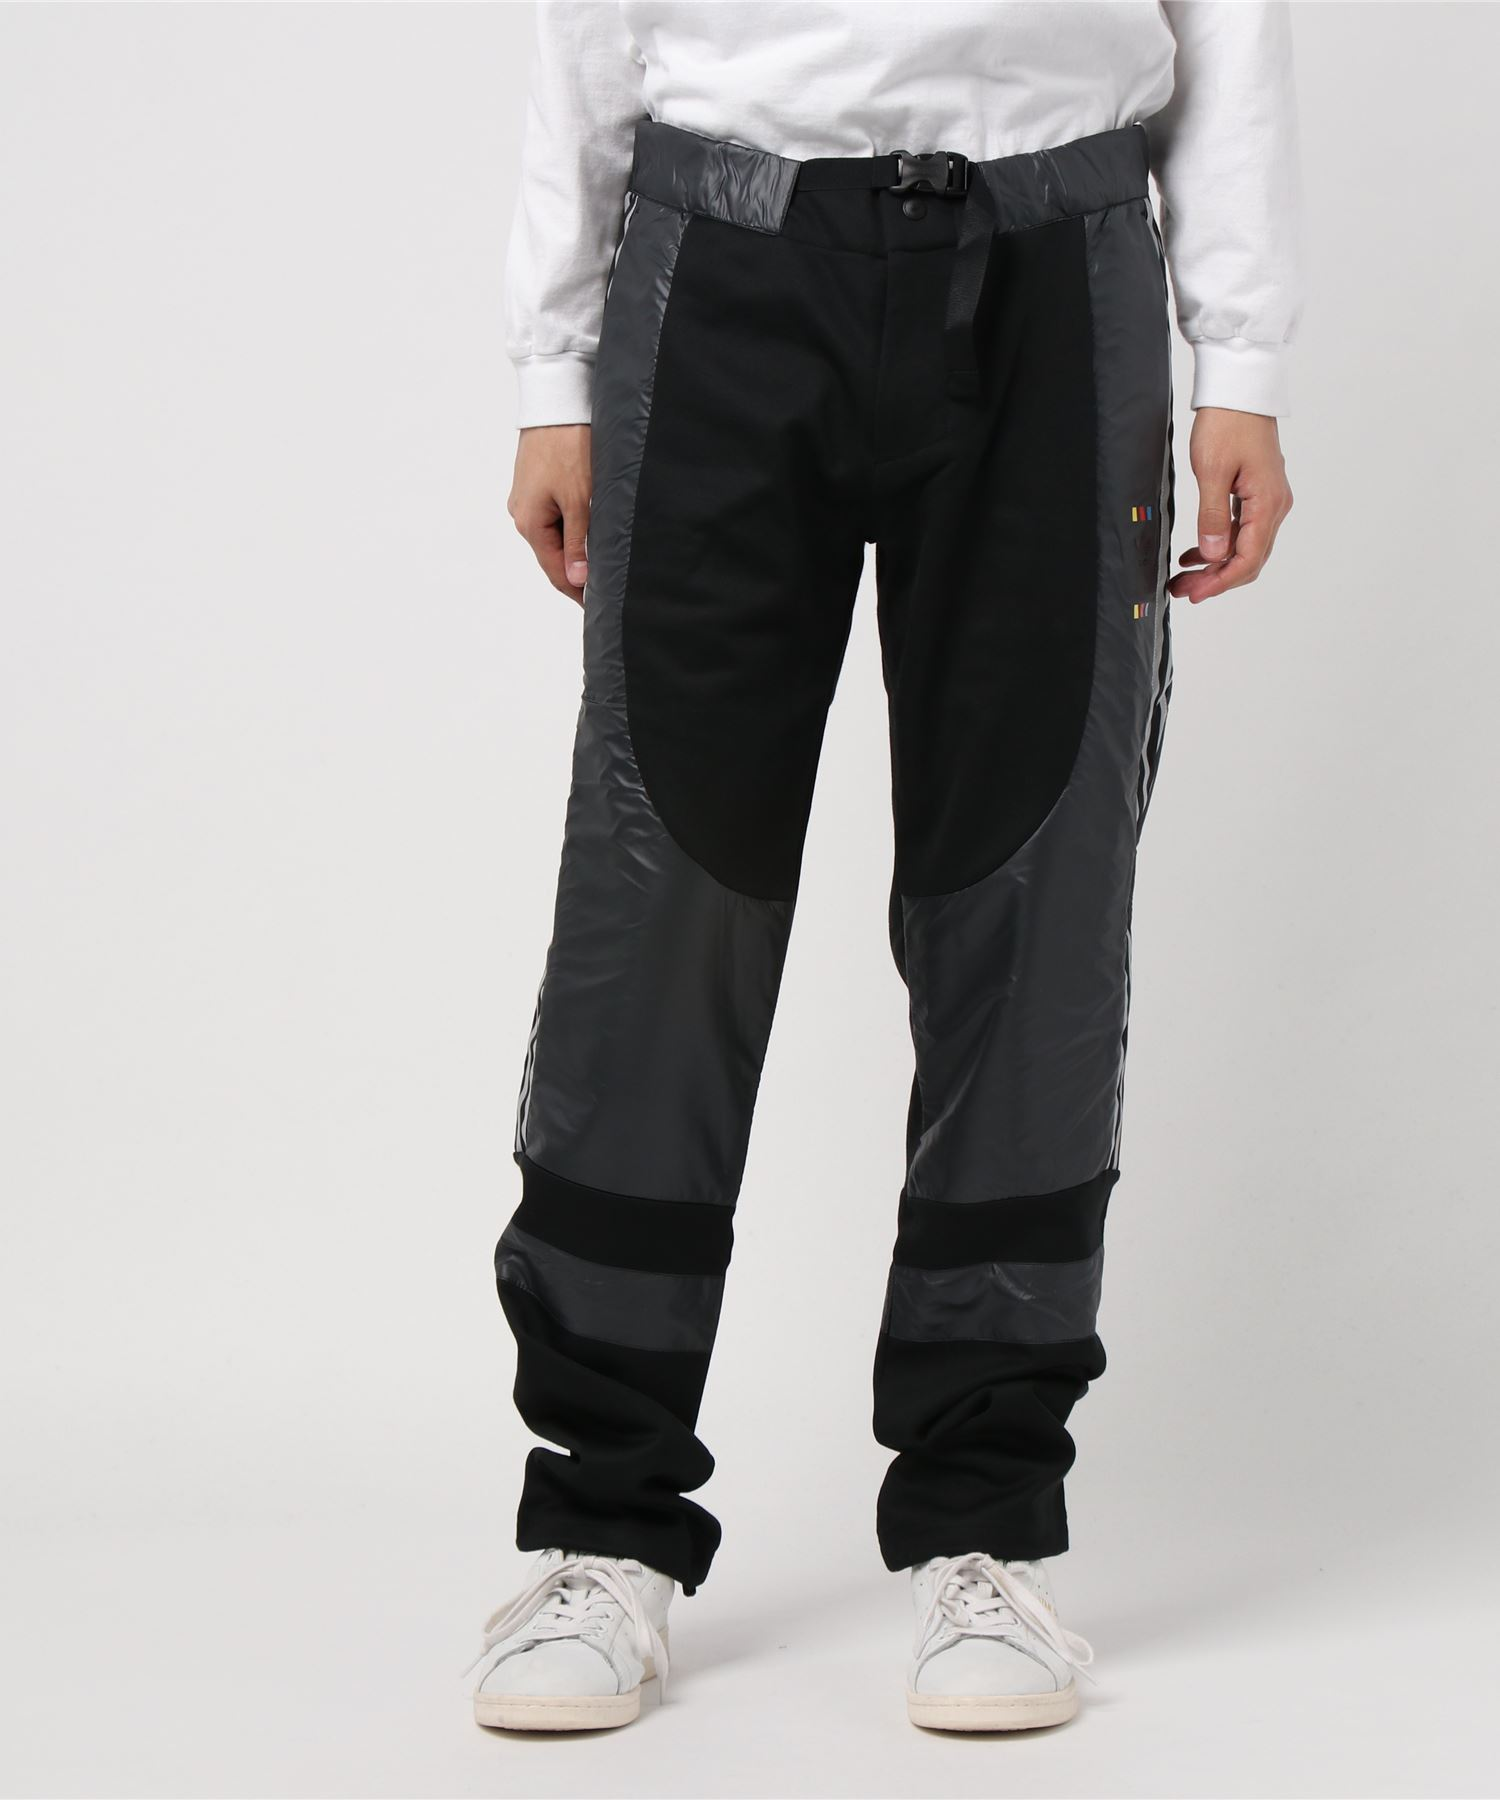 adidas Originals by Oyster Holdings 72HR PANT (DN8074)